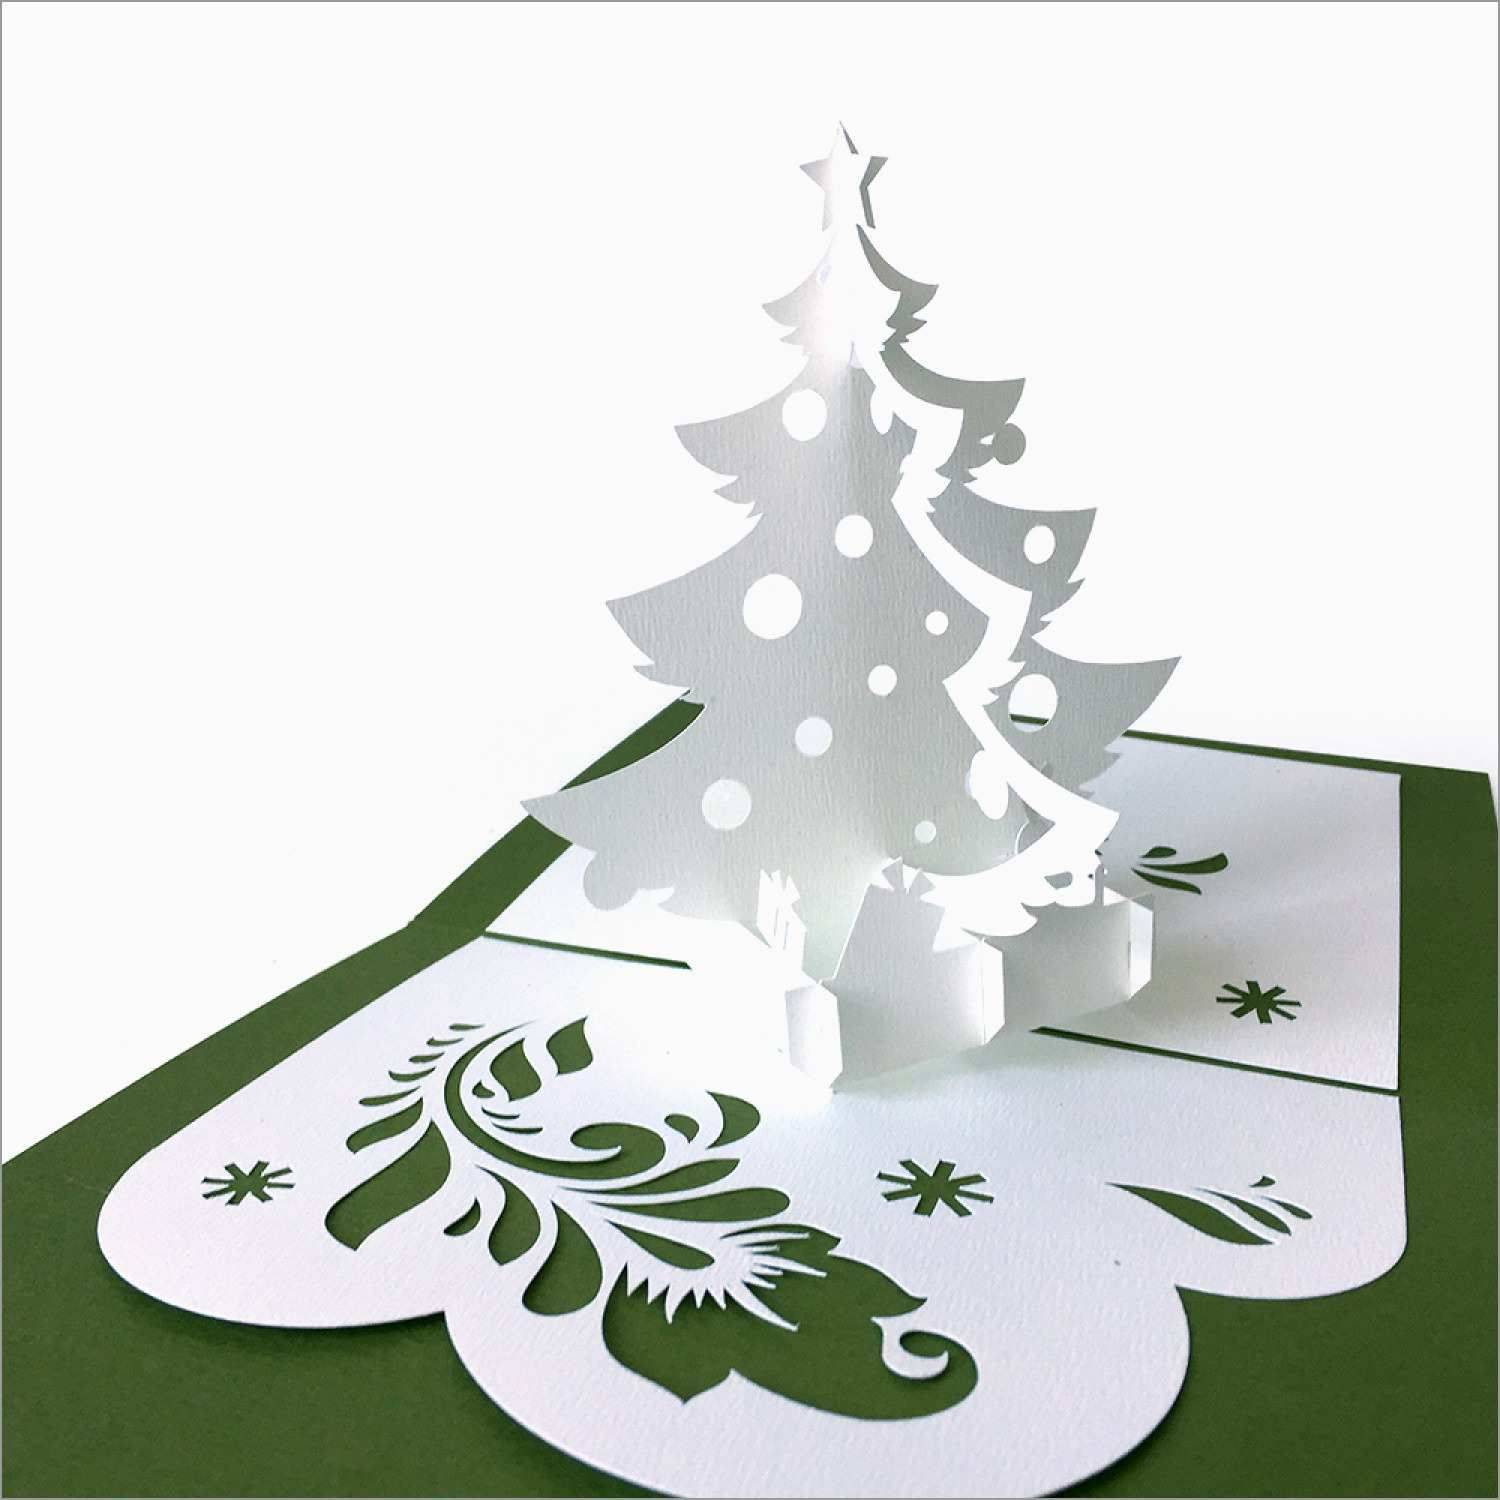 030 Template Ideas Pop Up Card Templates Free Download Cute Throughout Pop Up Tree Card Te Pop Up Card Templates 3d Christmas Tree Card Christmas Tree Template